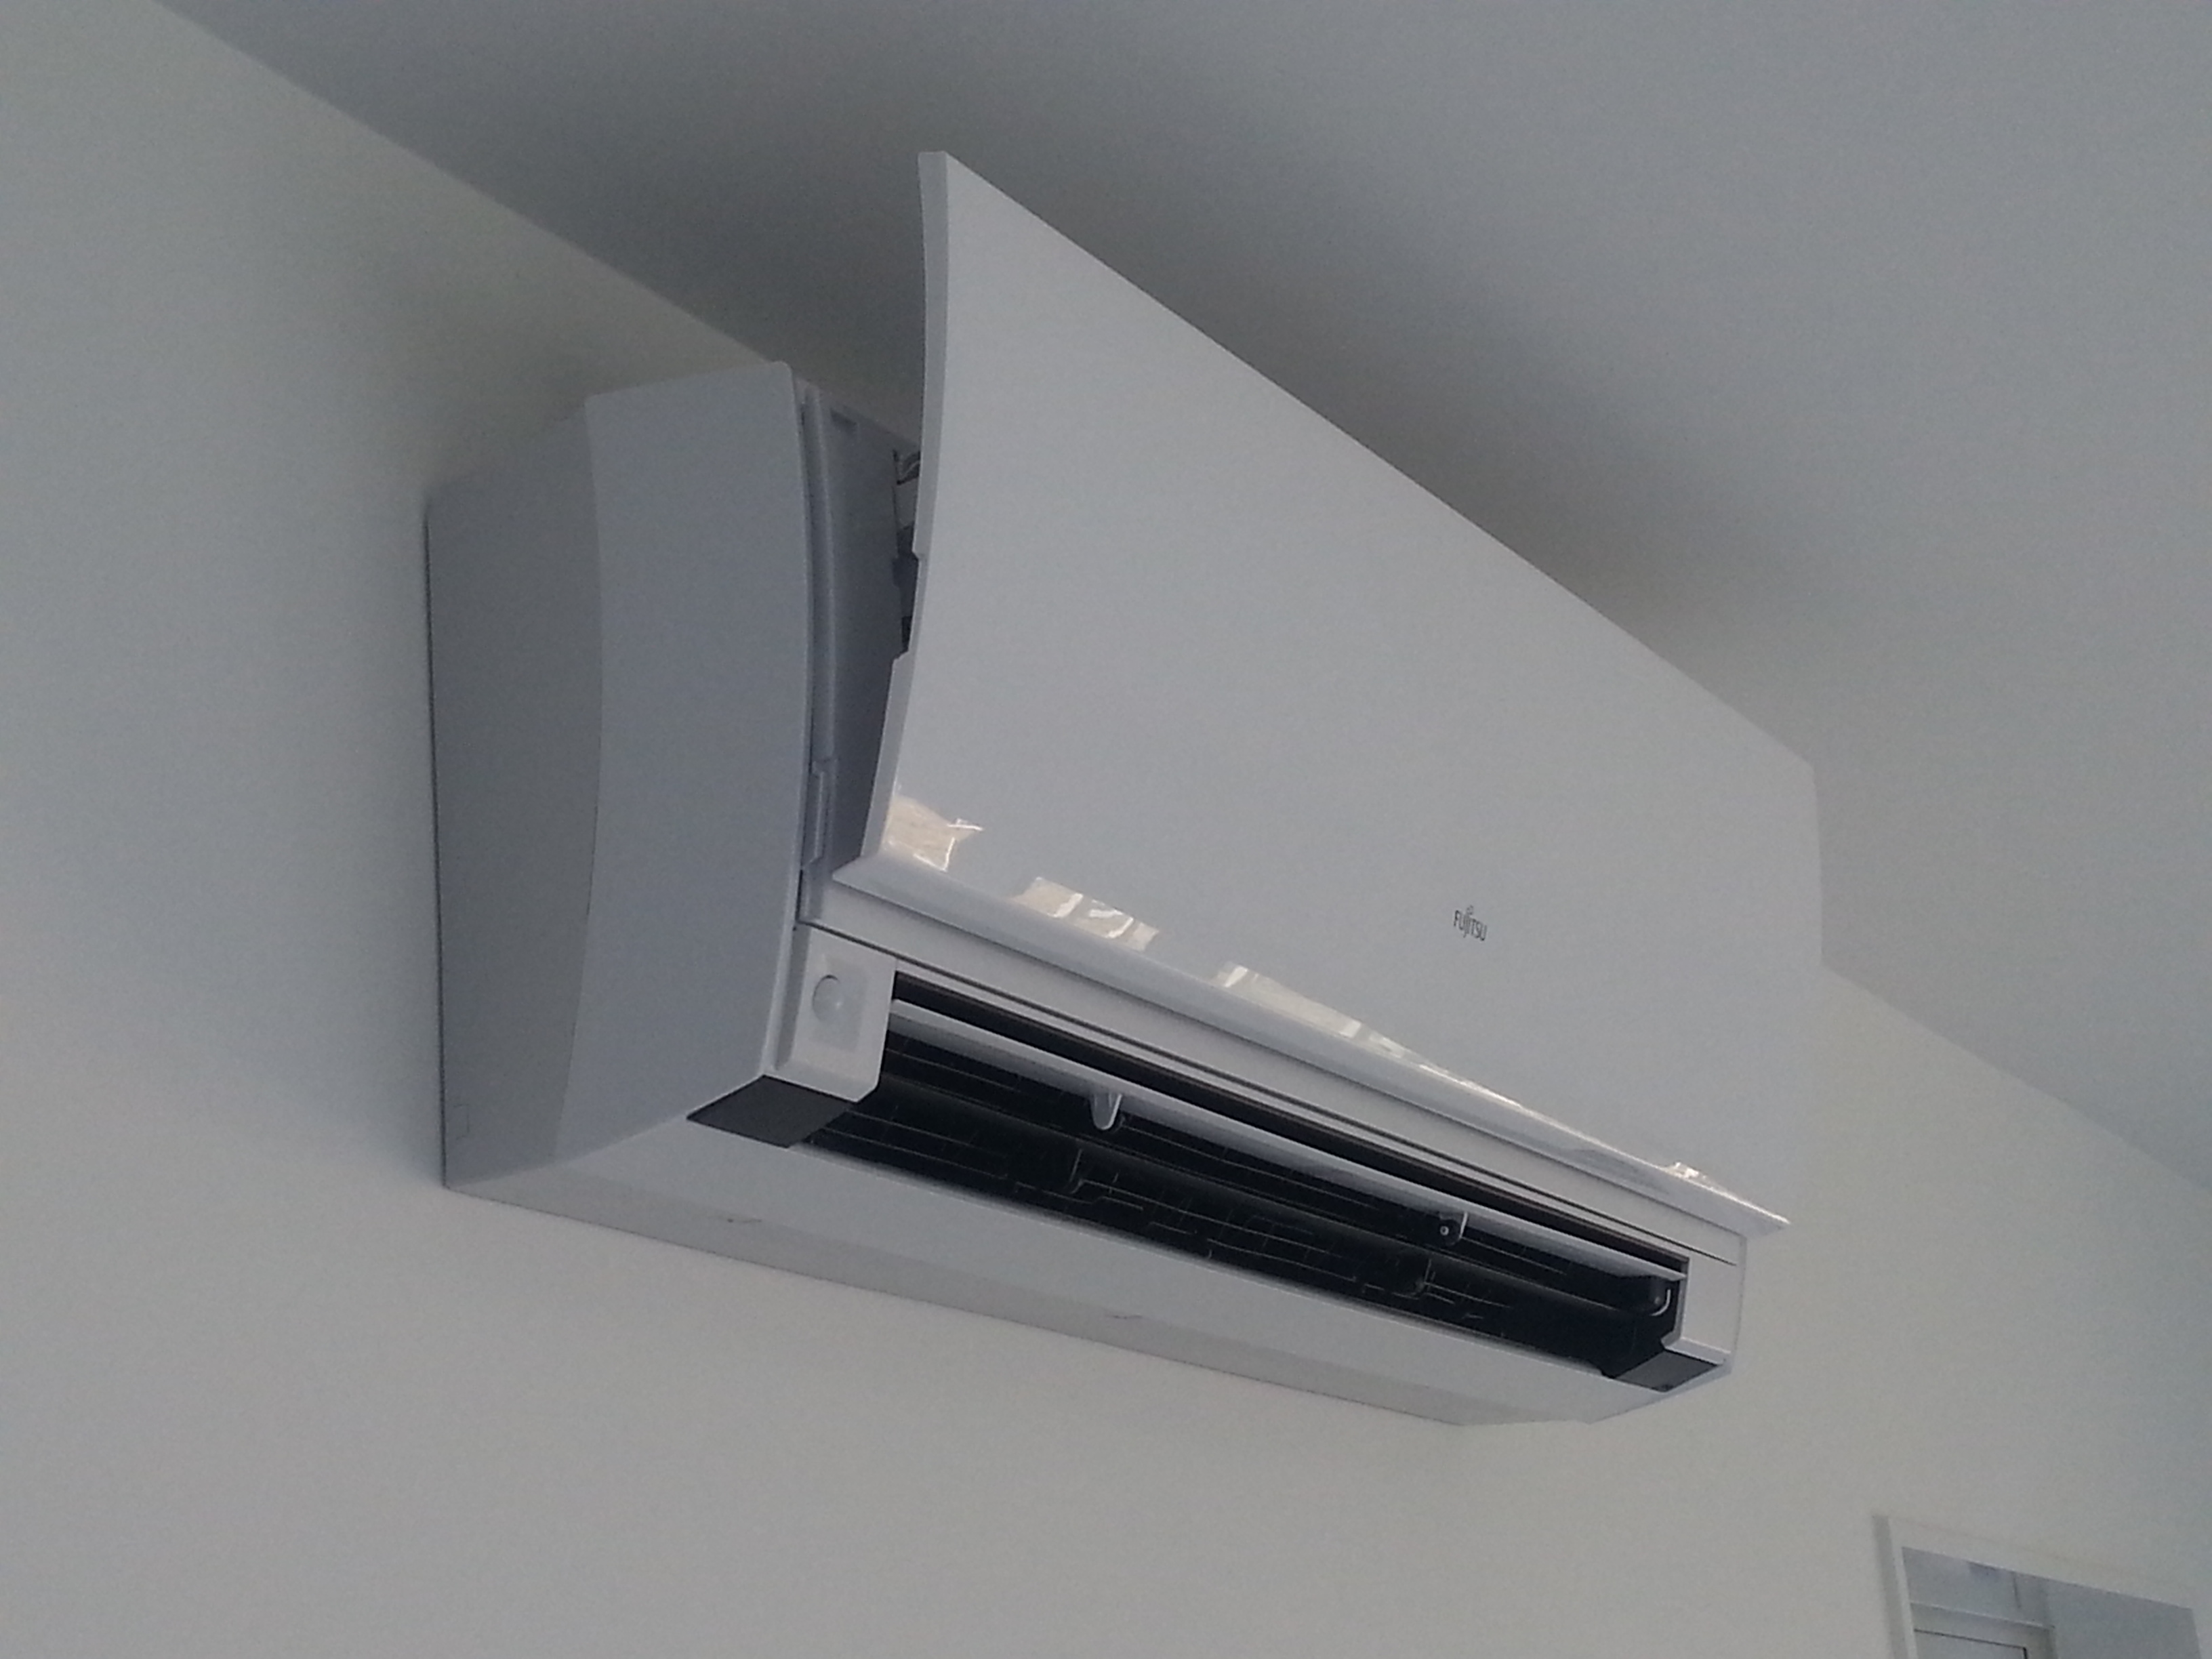 #272A30 Heat Pump Installation Nocria Quotes Brand New 8741 Air Conditioning Installation Auckland images with 3264x2448 px on helpvideos.info - Air Conditioners, Air Coolers and more